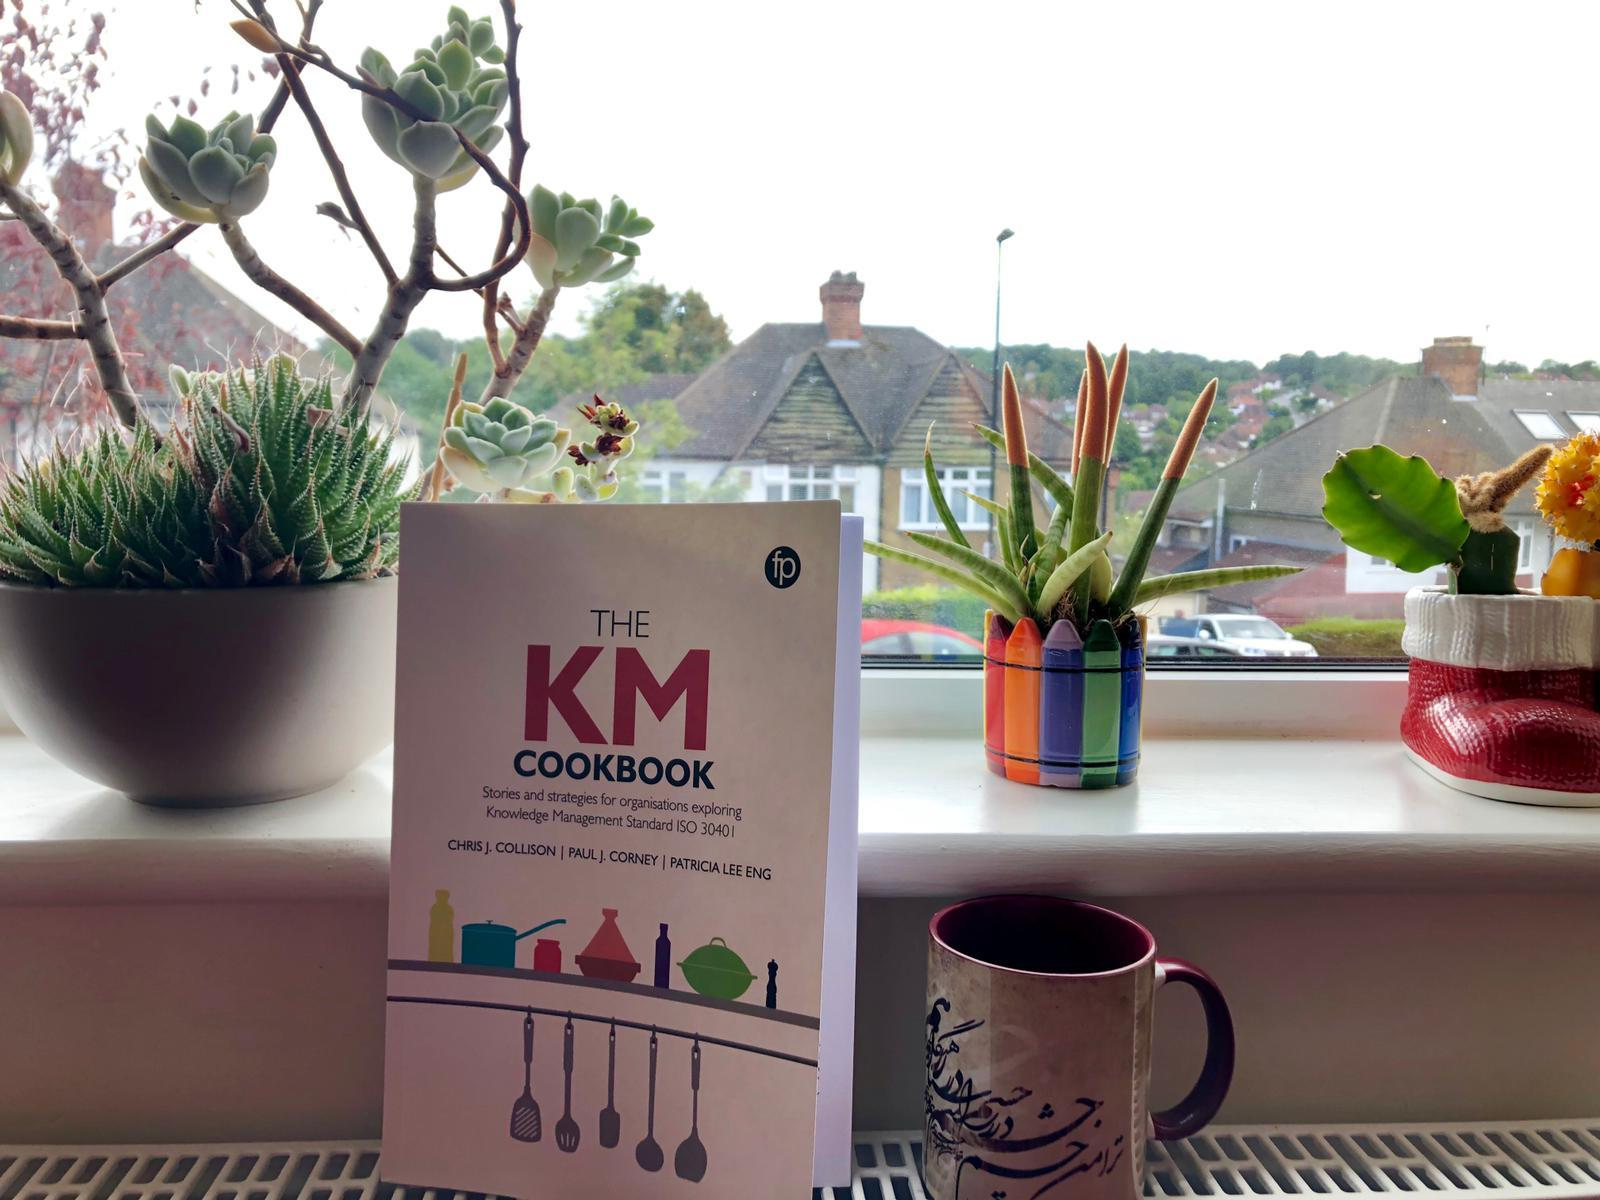 Firoozeh Hadian Dehkordi's KM Cookbook in situ… Firoozeh's story about the use of KM tools concluded the Chefs Specials chapter.